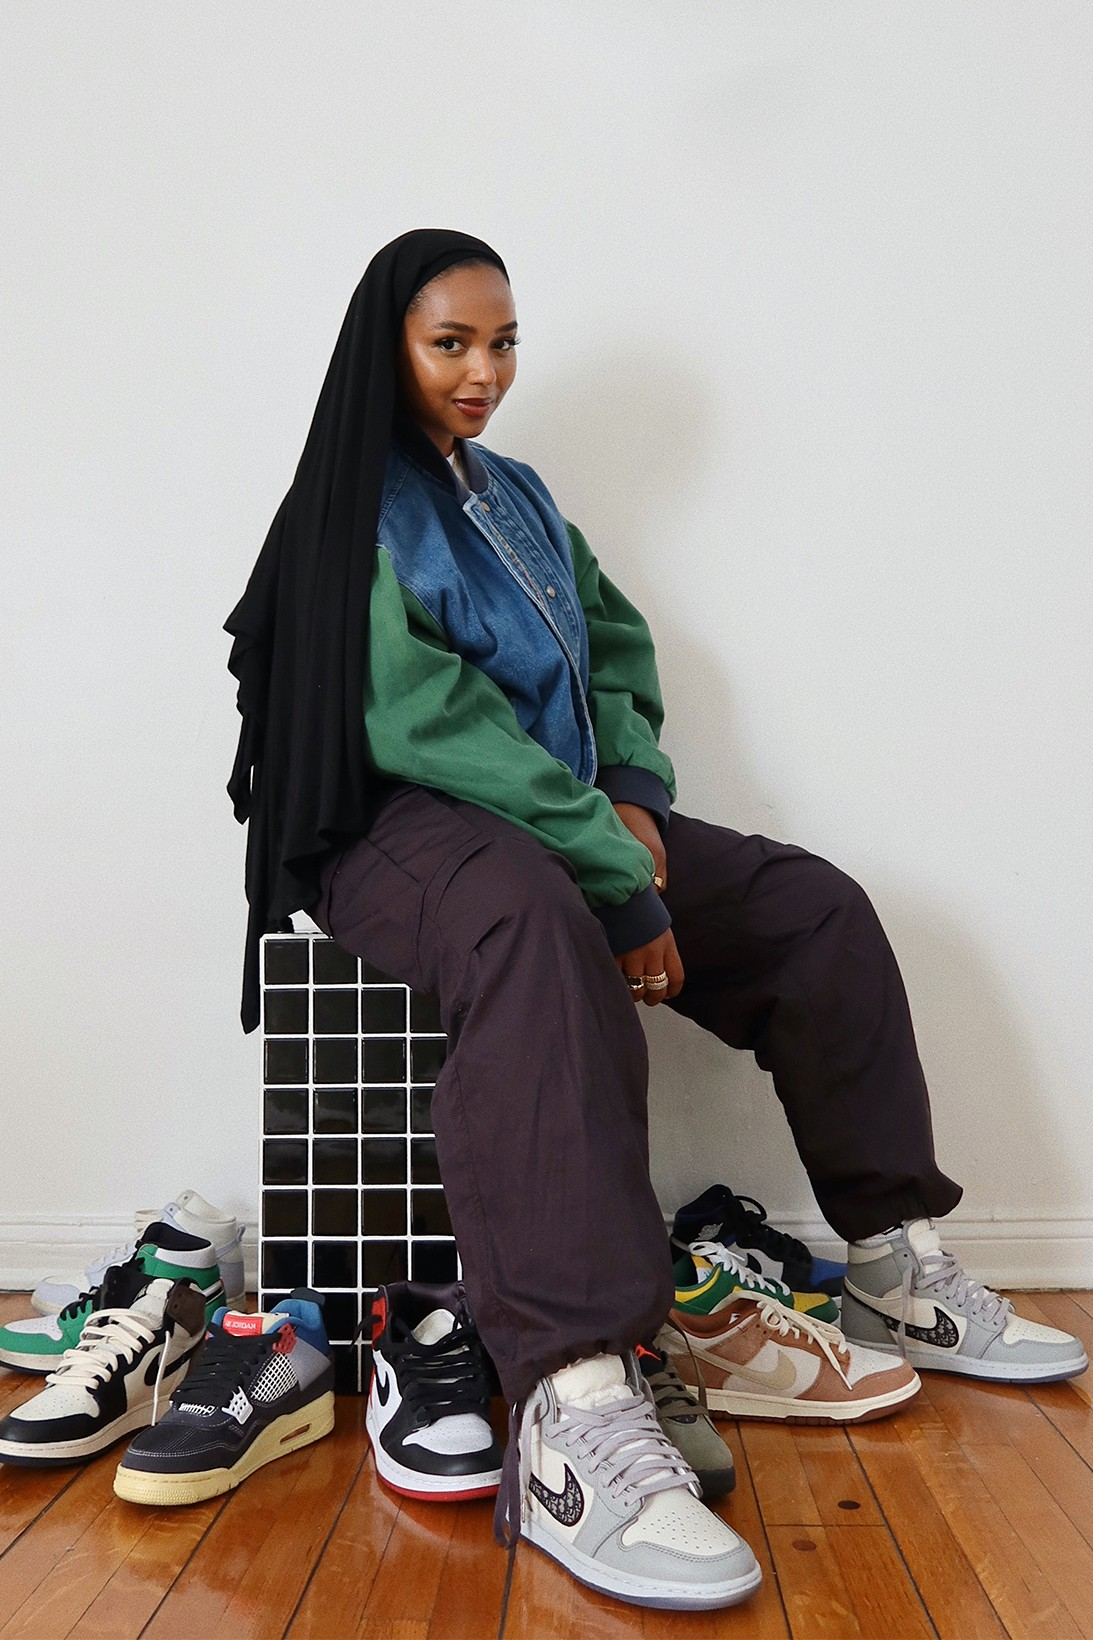 shahd batal sneaker collector collection los angeles content creator influencer youtuber sudanese american hijab